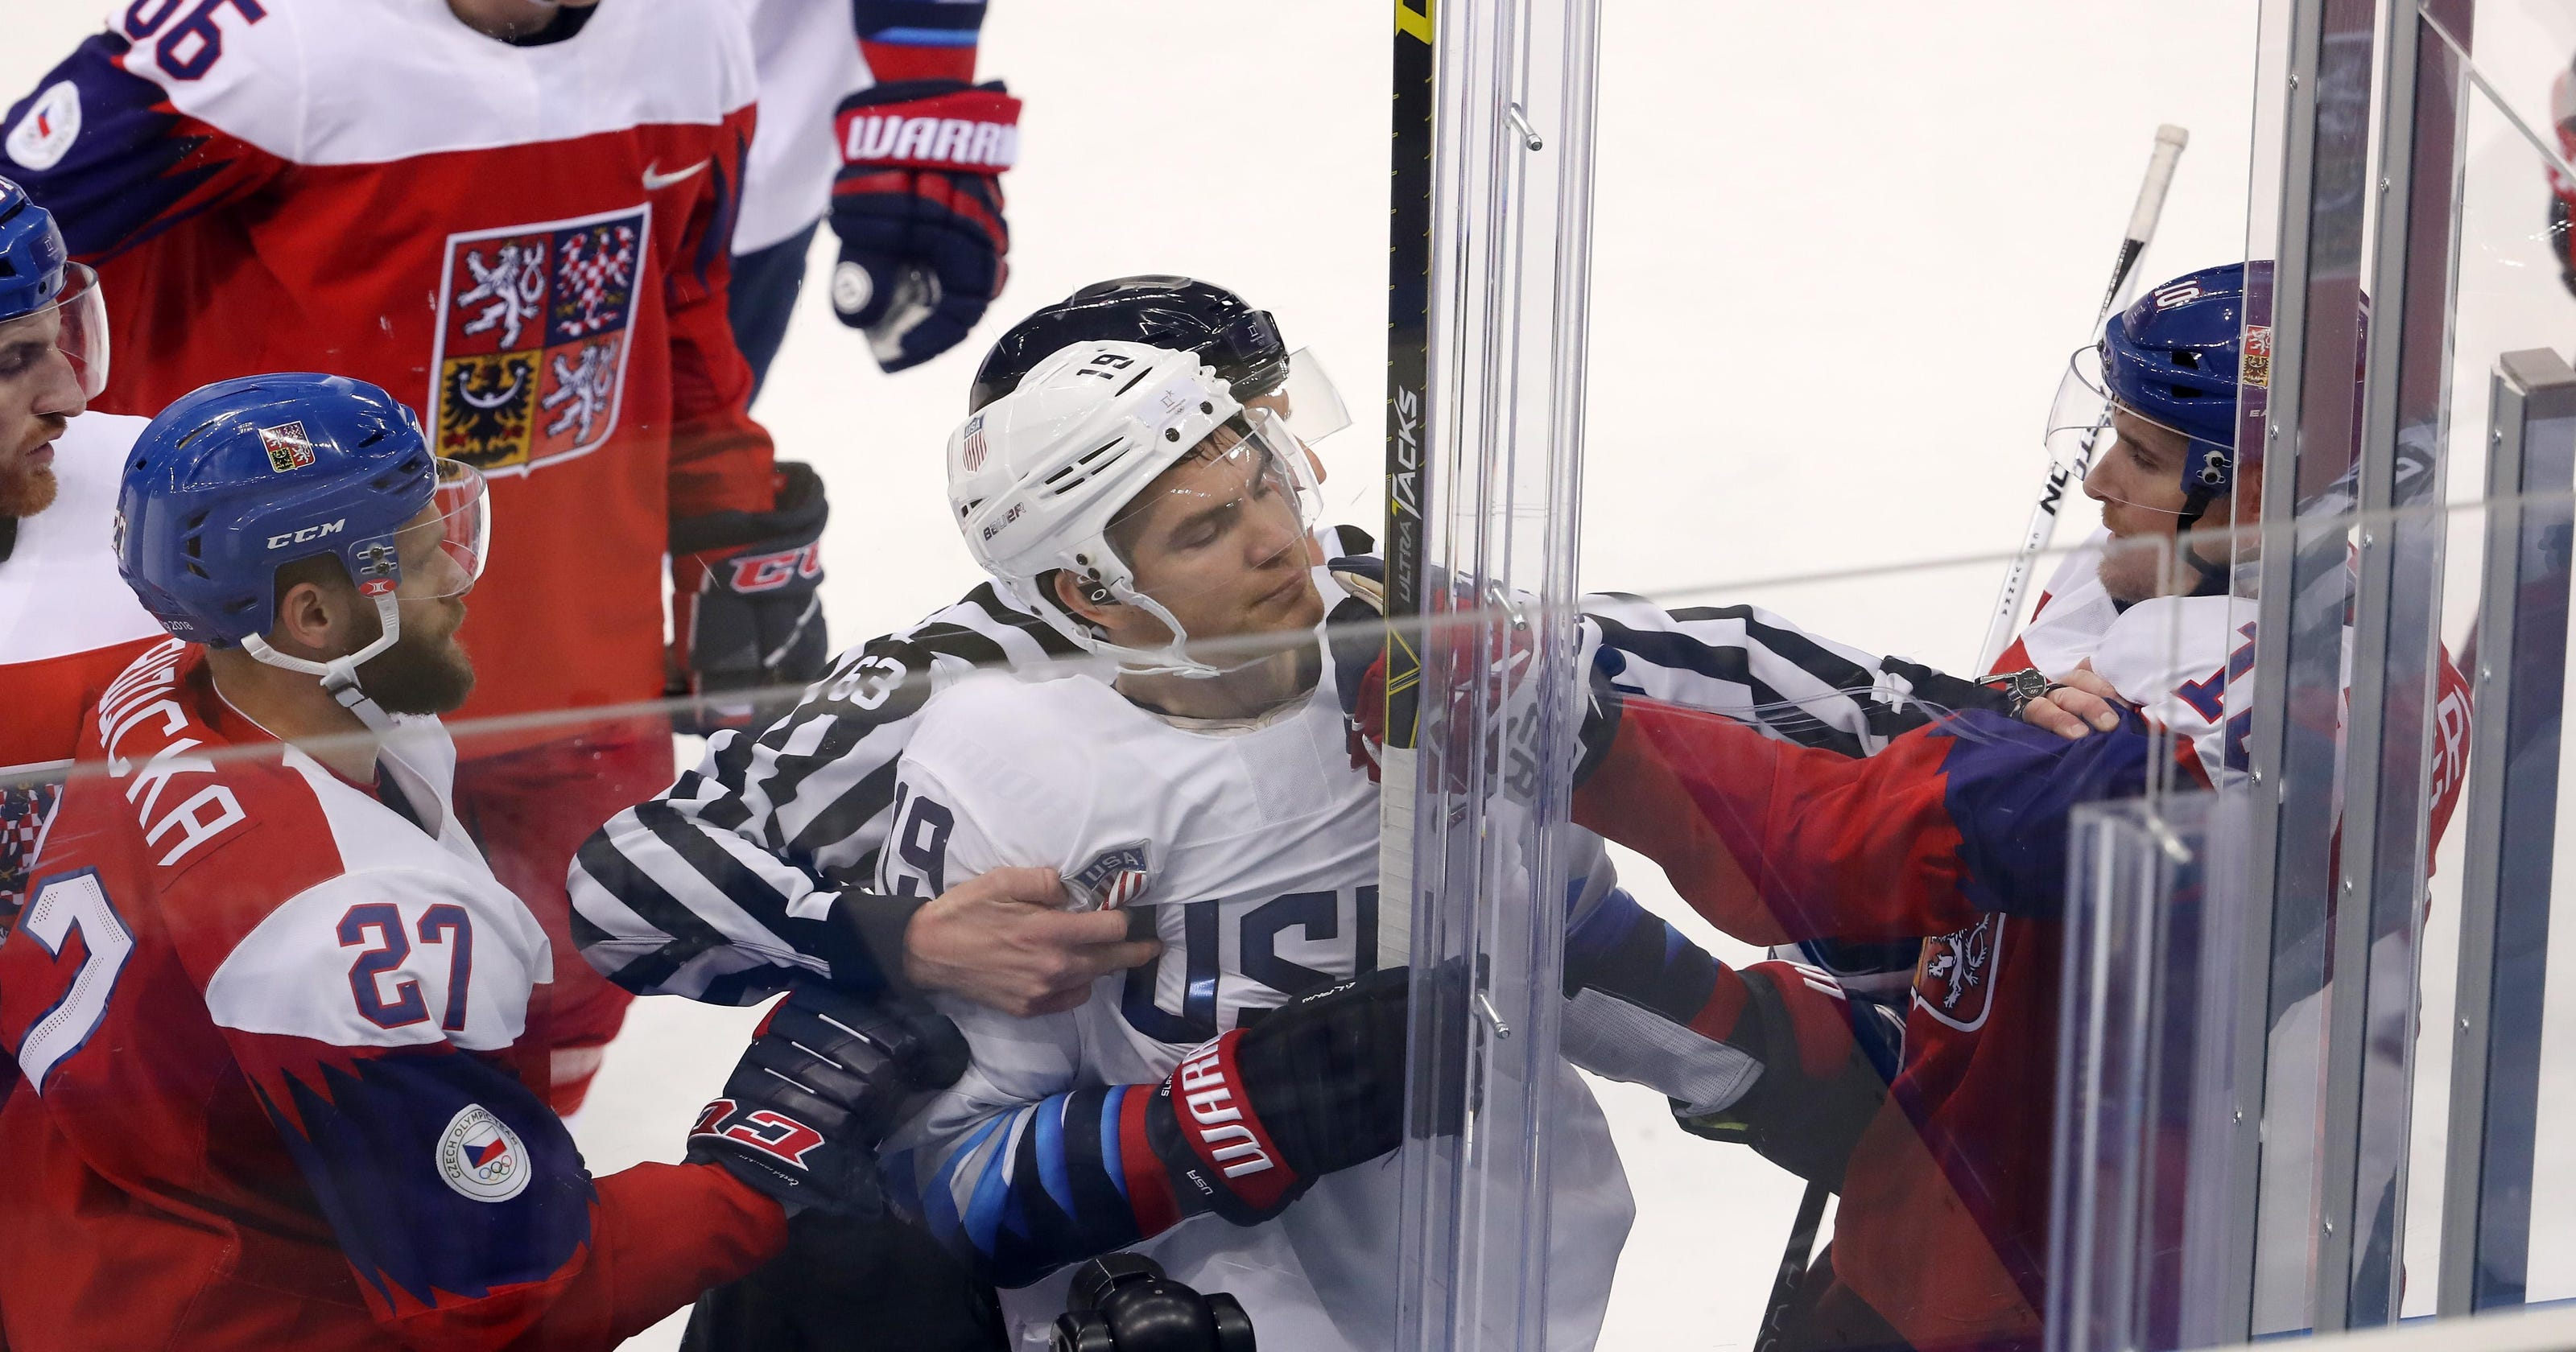 U.S. men s hockey s medal hopes implode in shootout a33f42aad